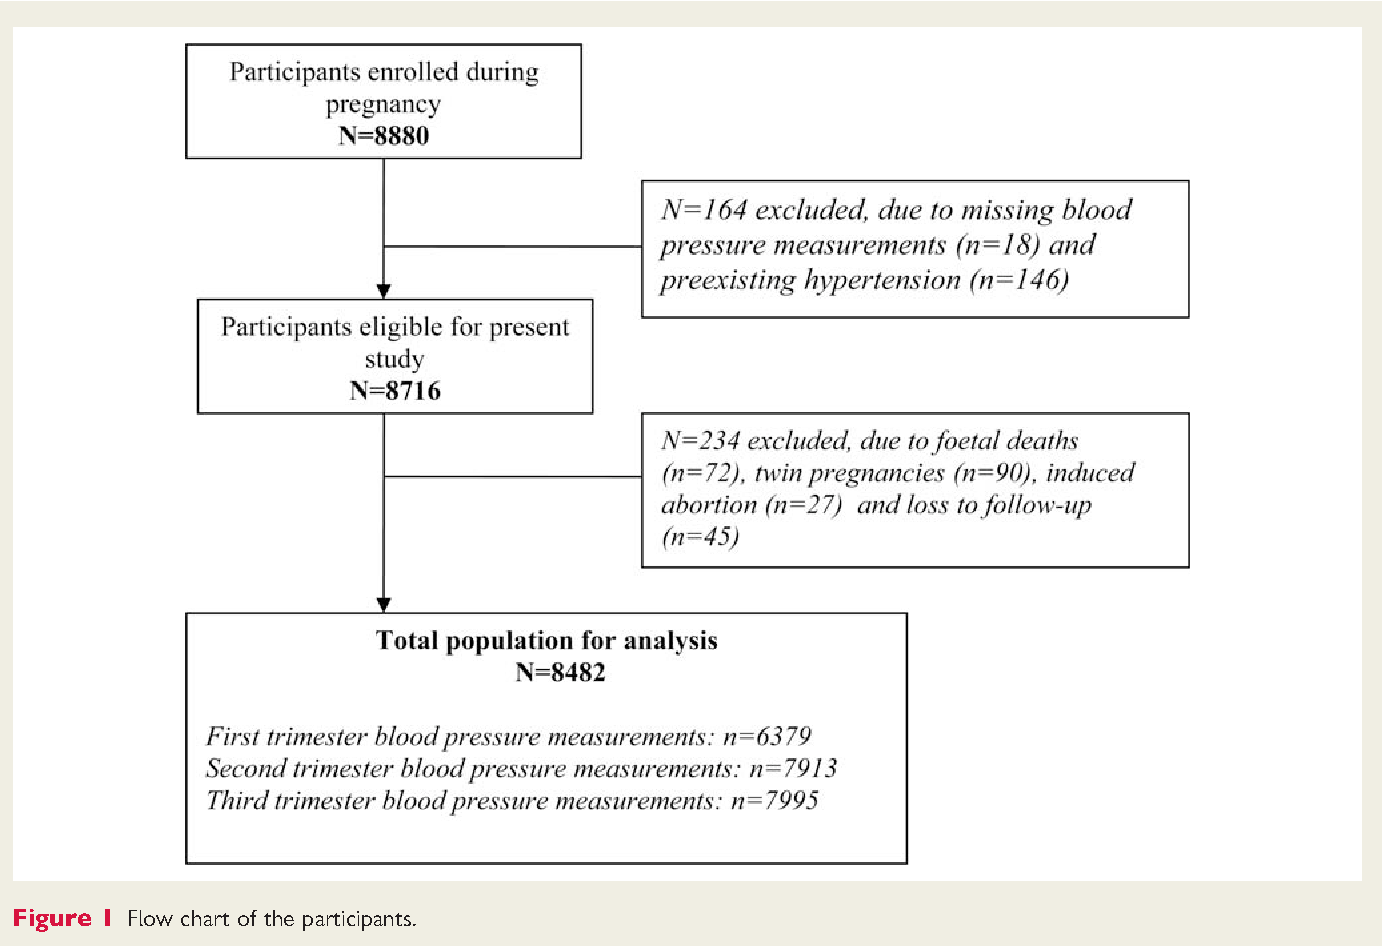 Blood Pressure Tracking During Pregnancy And The Risk Of Gestational